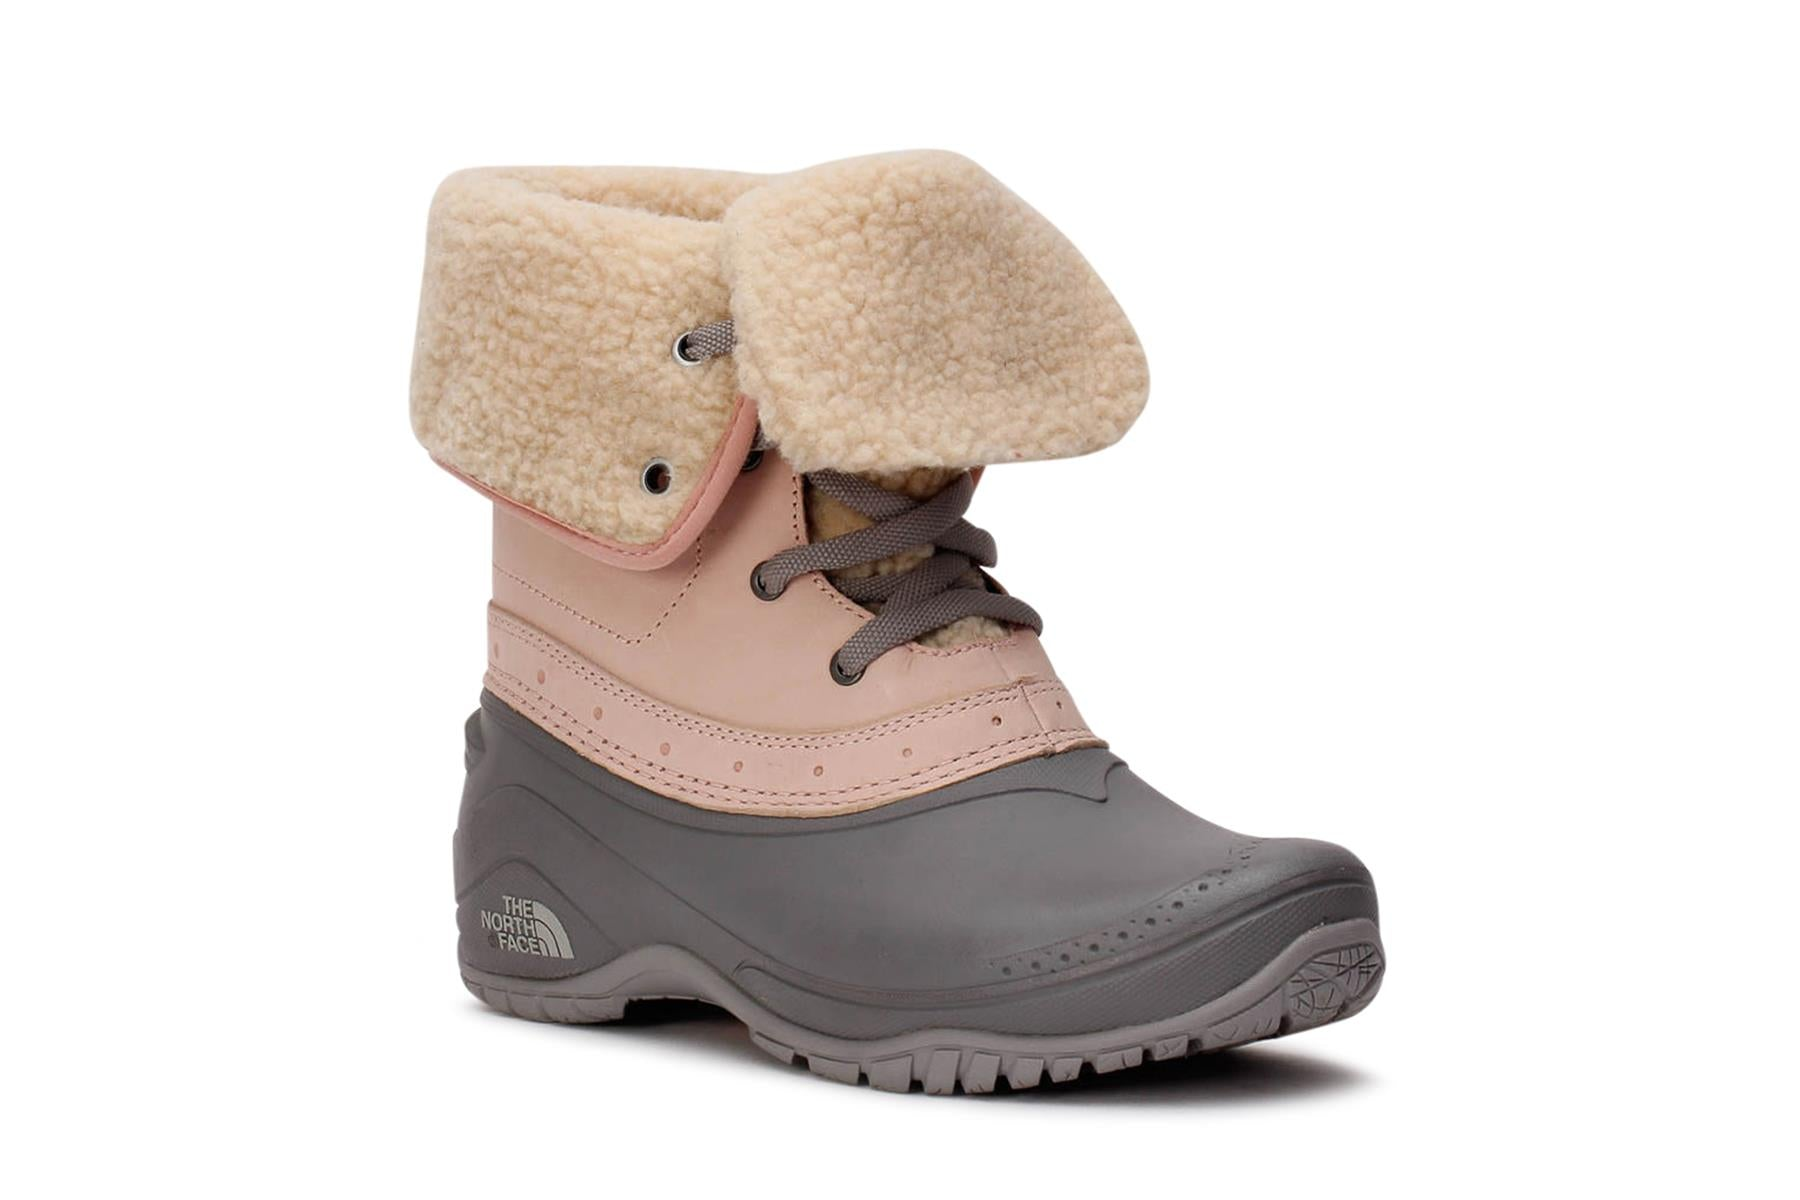 the-north-face-womens-shellista-roll-down-waterproof-boots-misty-rose-q-silver-grey-sole